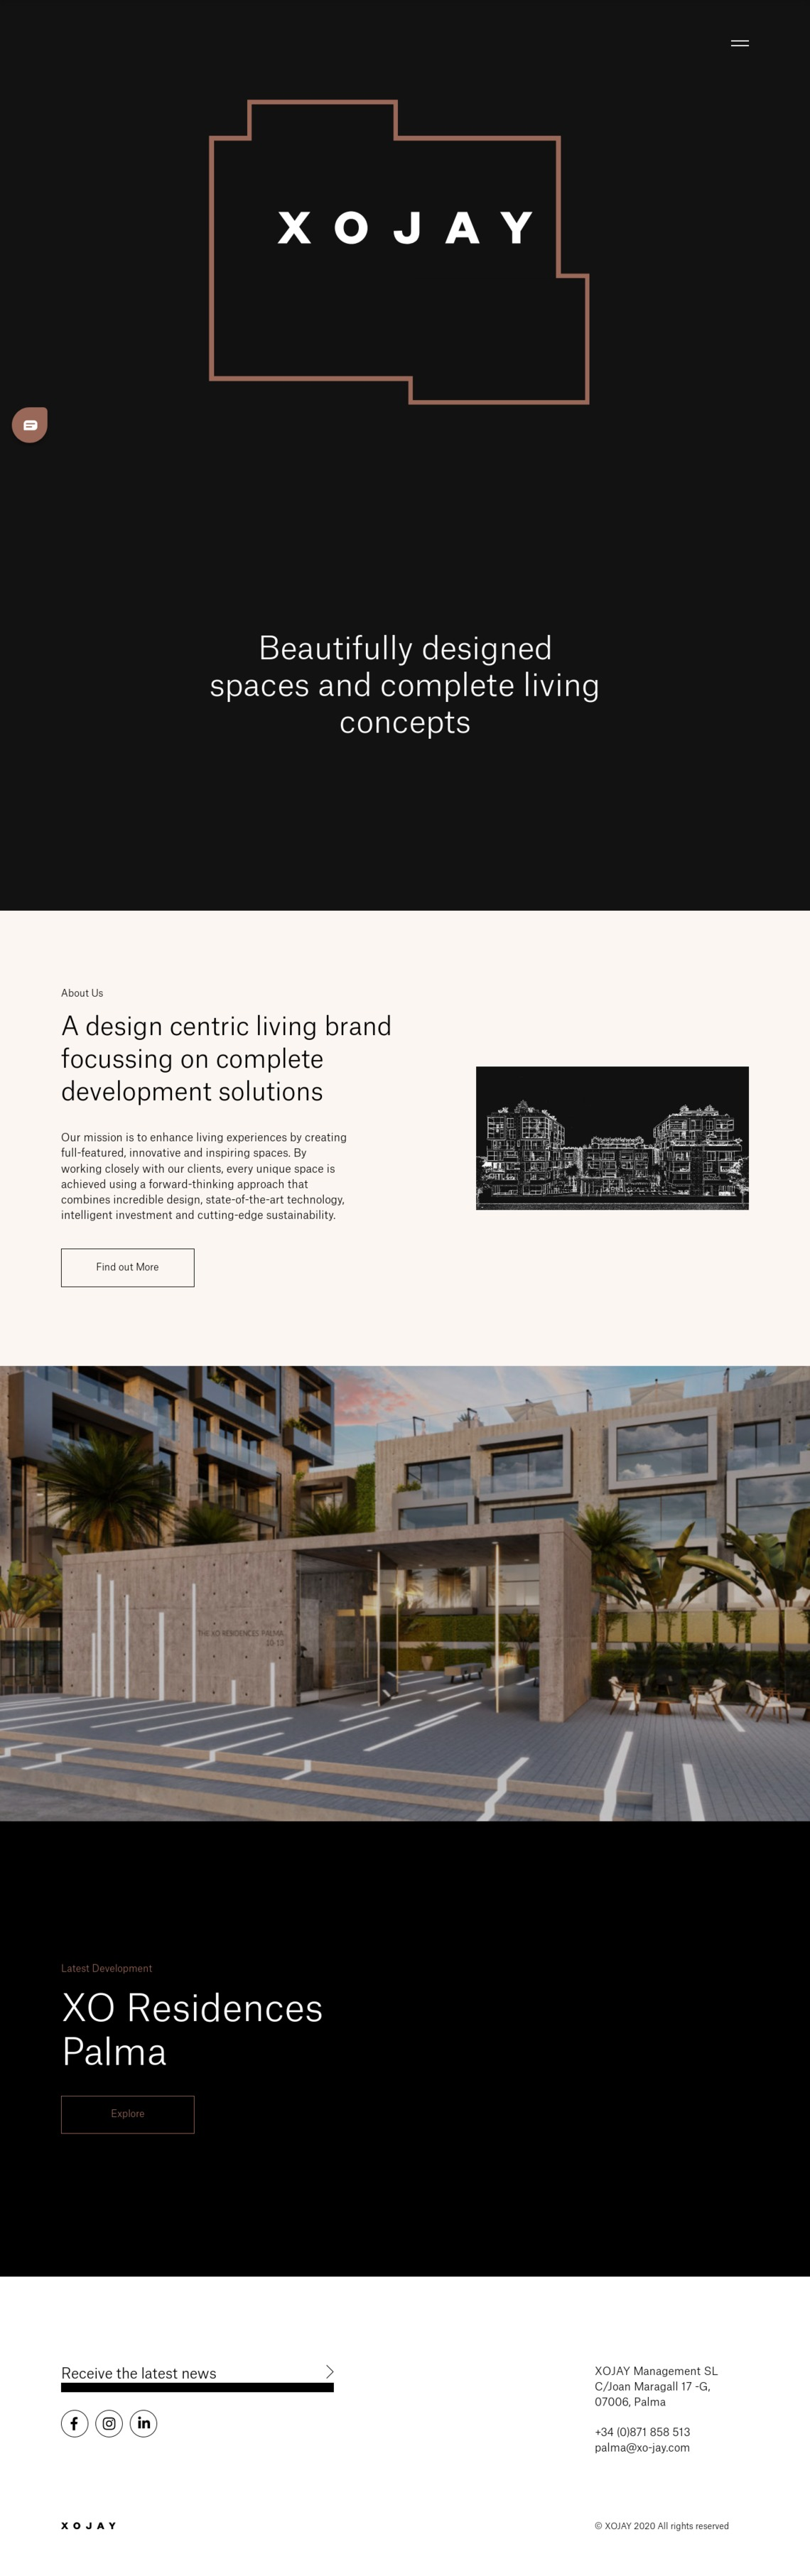 XOJAY — Beautifully Designed Spaces & Complete Living Concepts